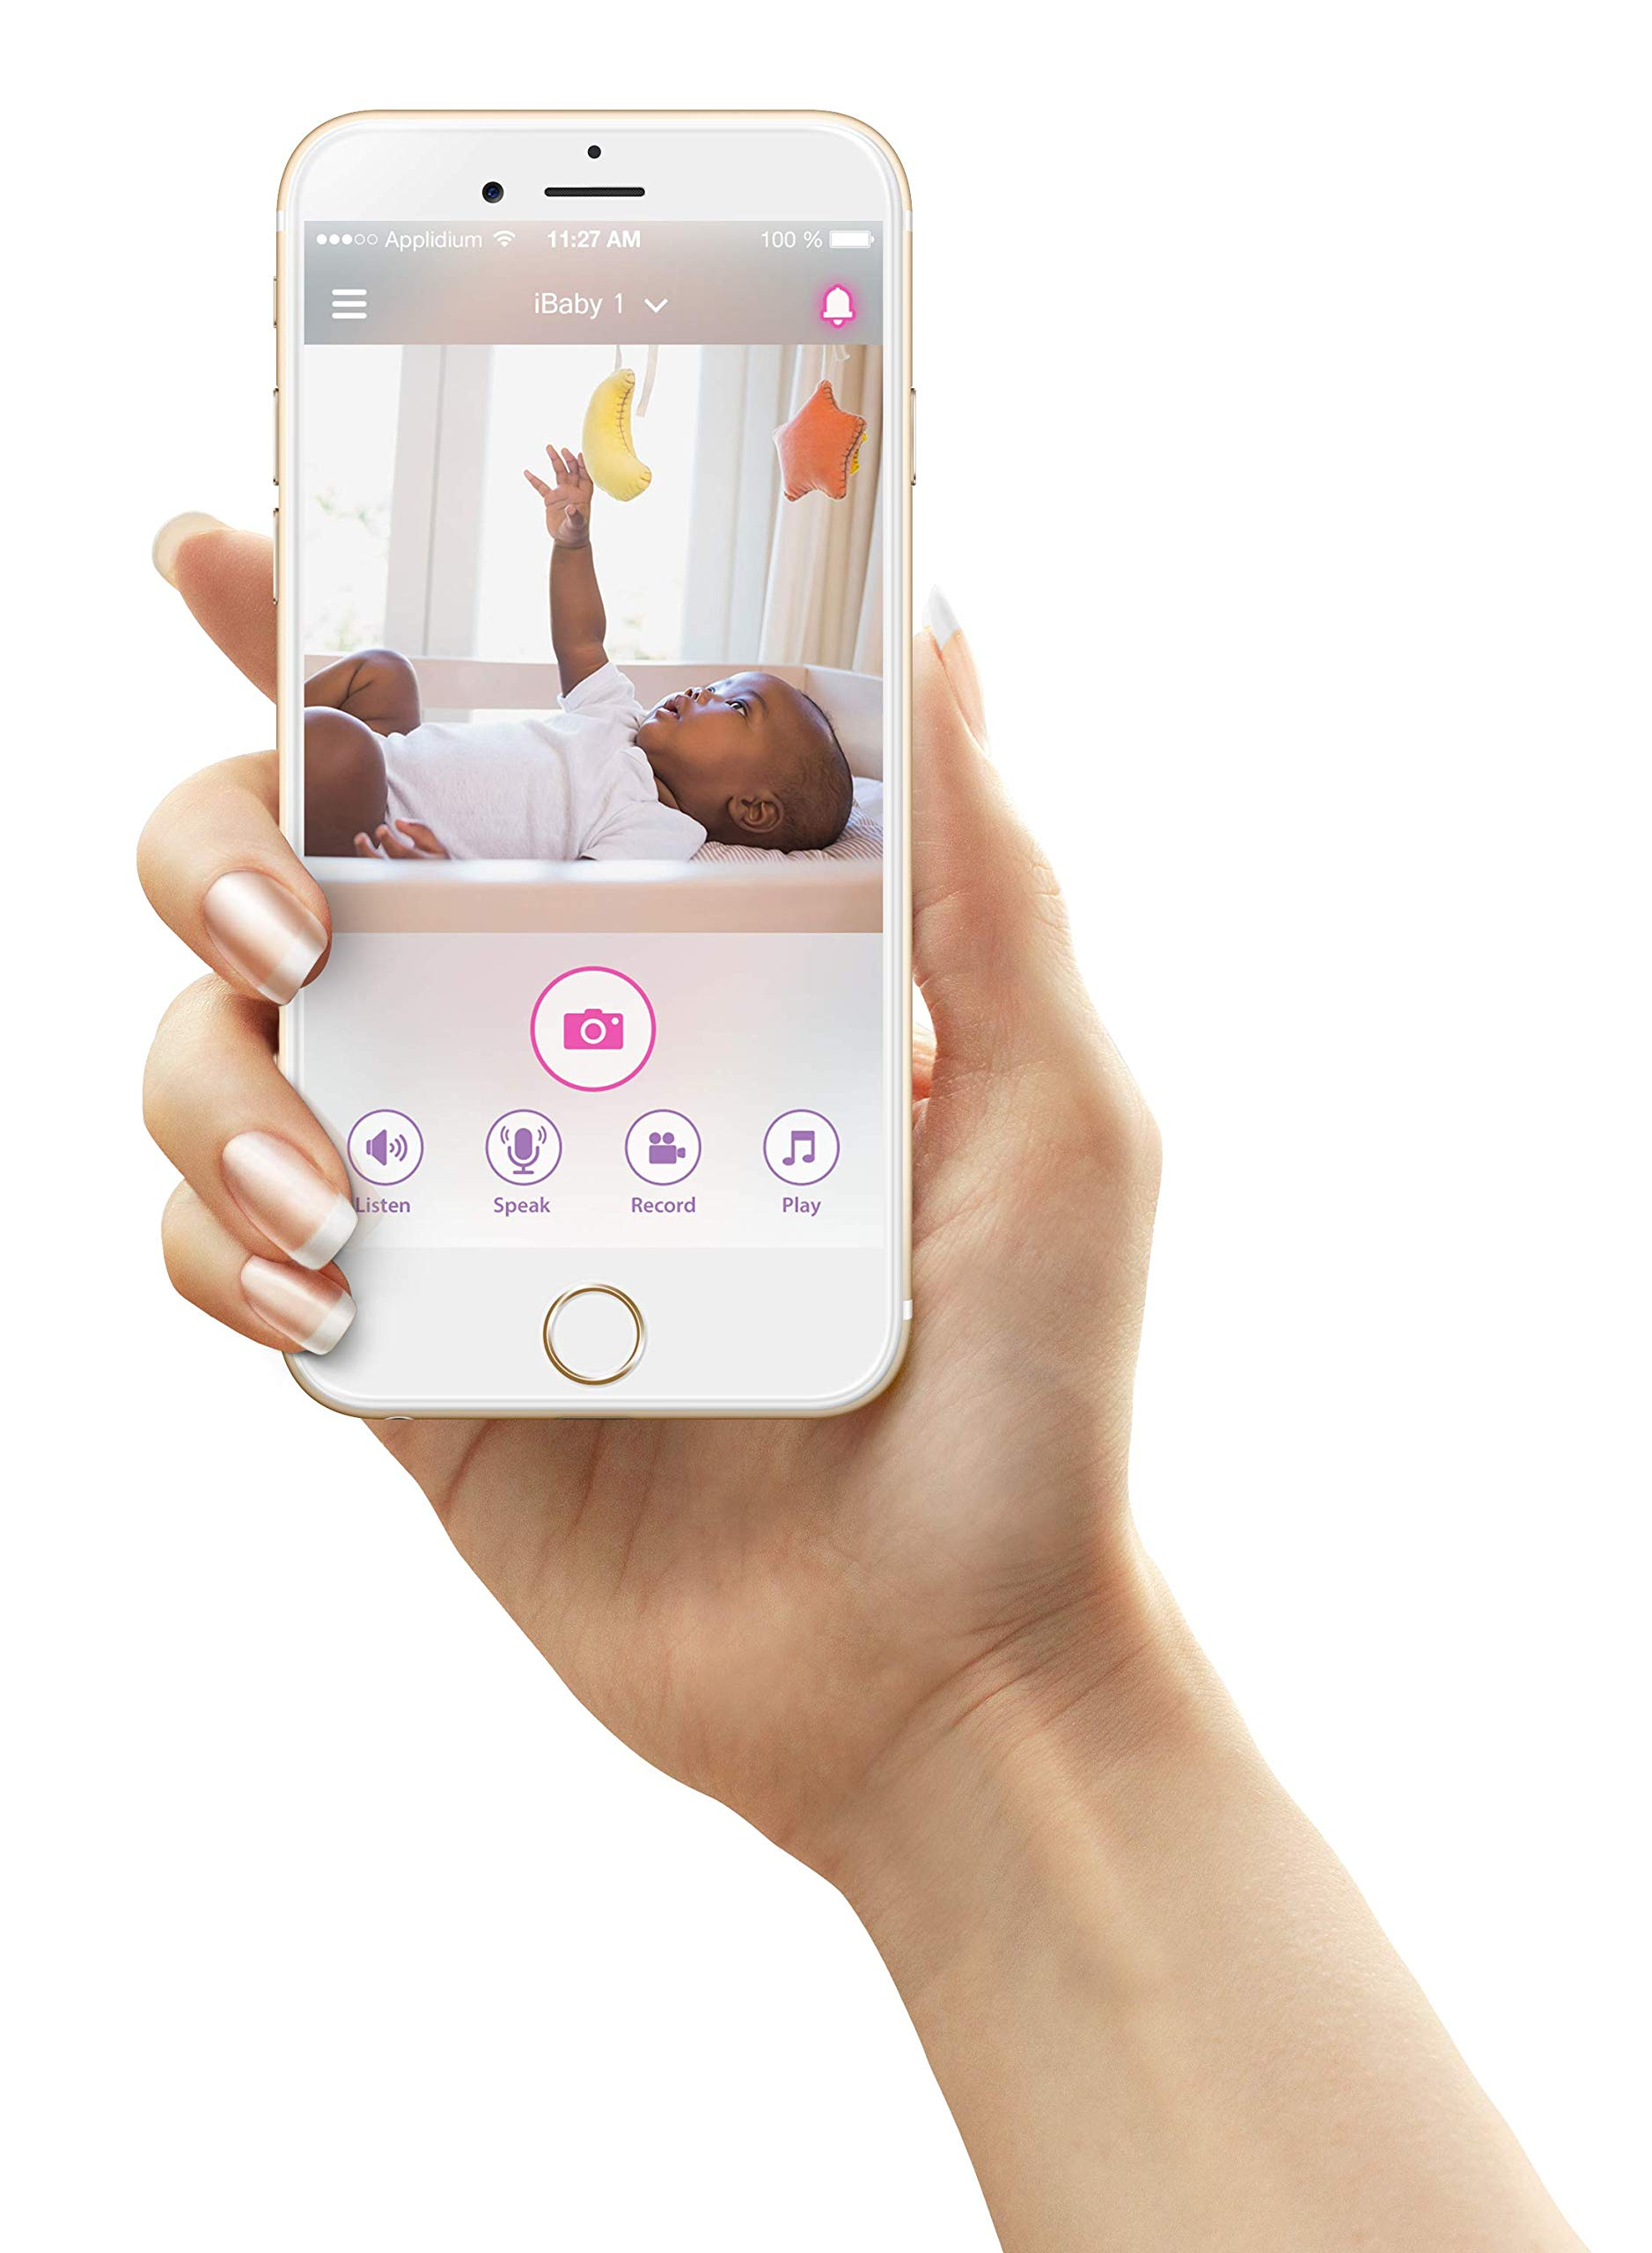 iBaby Wifi Baby Monitor M7 Lite, Smart Baby Care System 1080p Video Camera with Wi-Fi Speakers, Thousands of Lullabies & Bed Stories, Growing Timeline, Motion & Sound Alerts for Android and iOS by iBaby (Image #5)